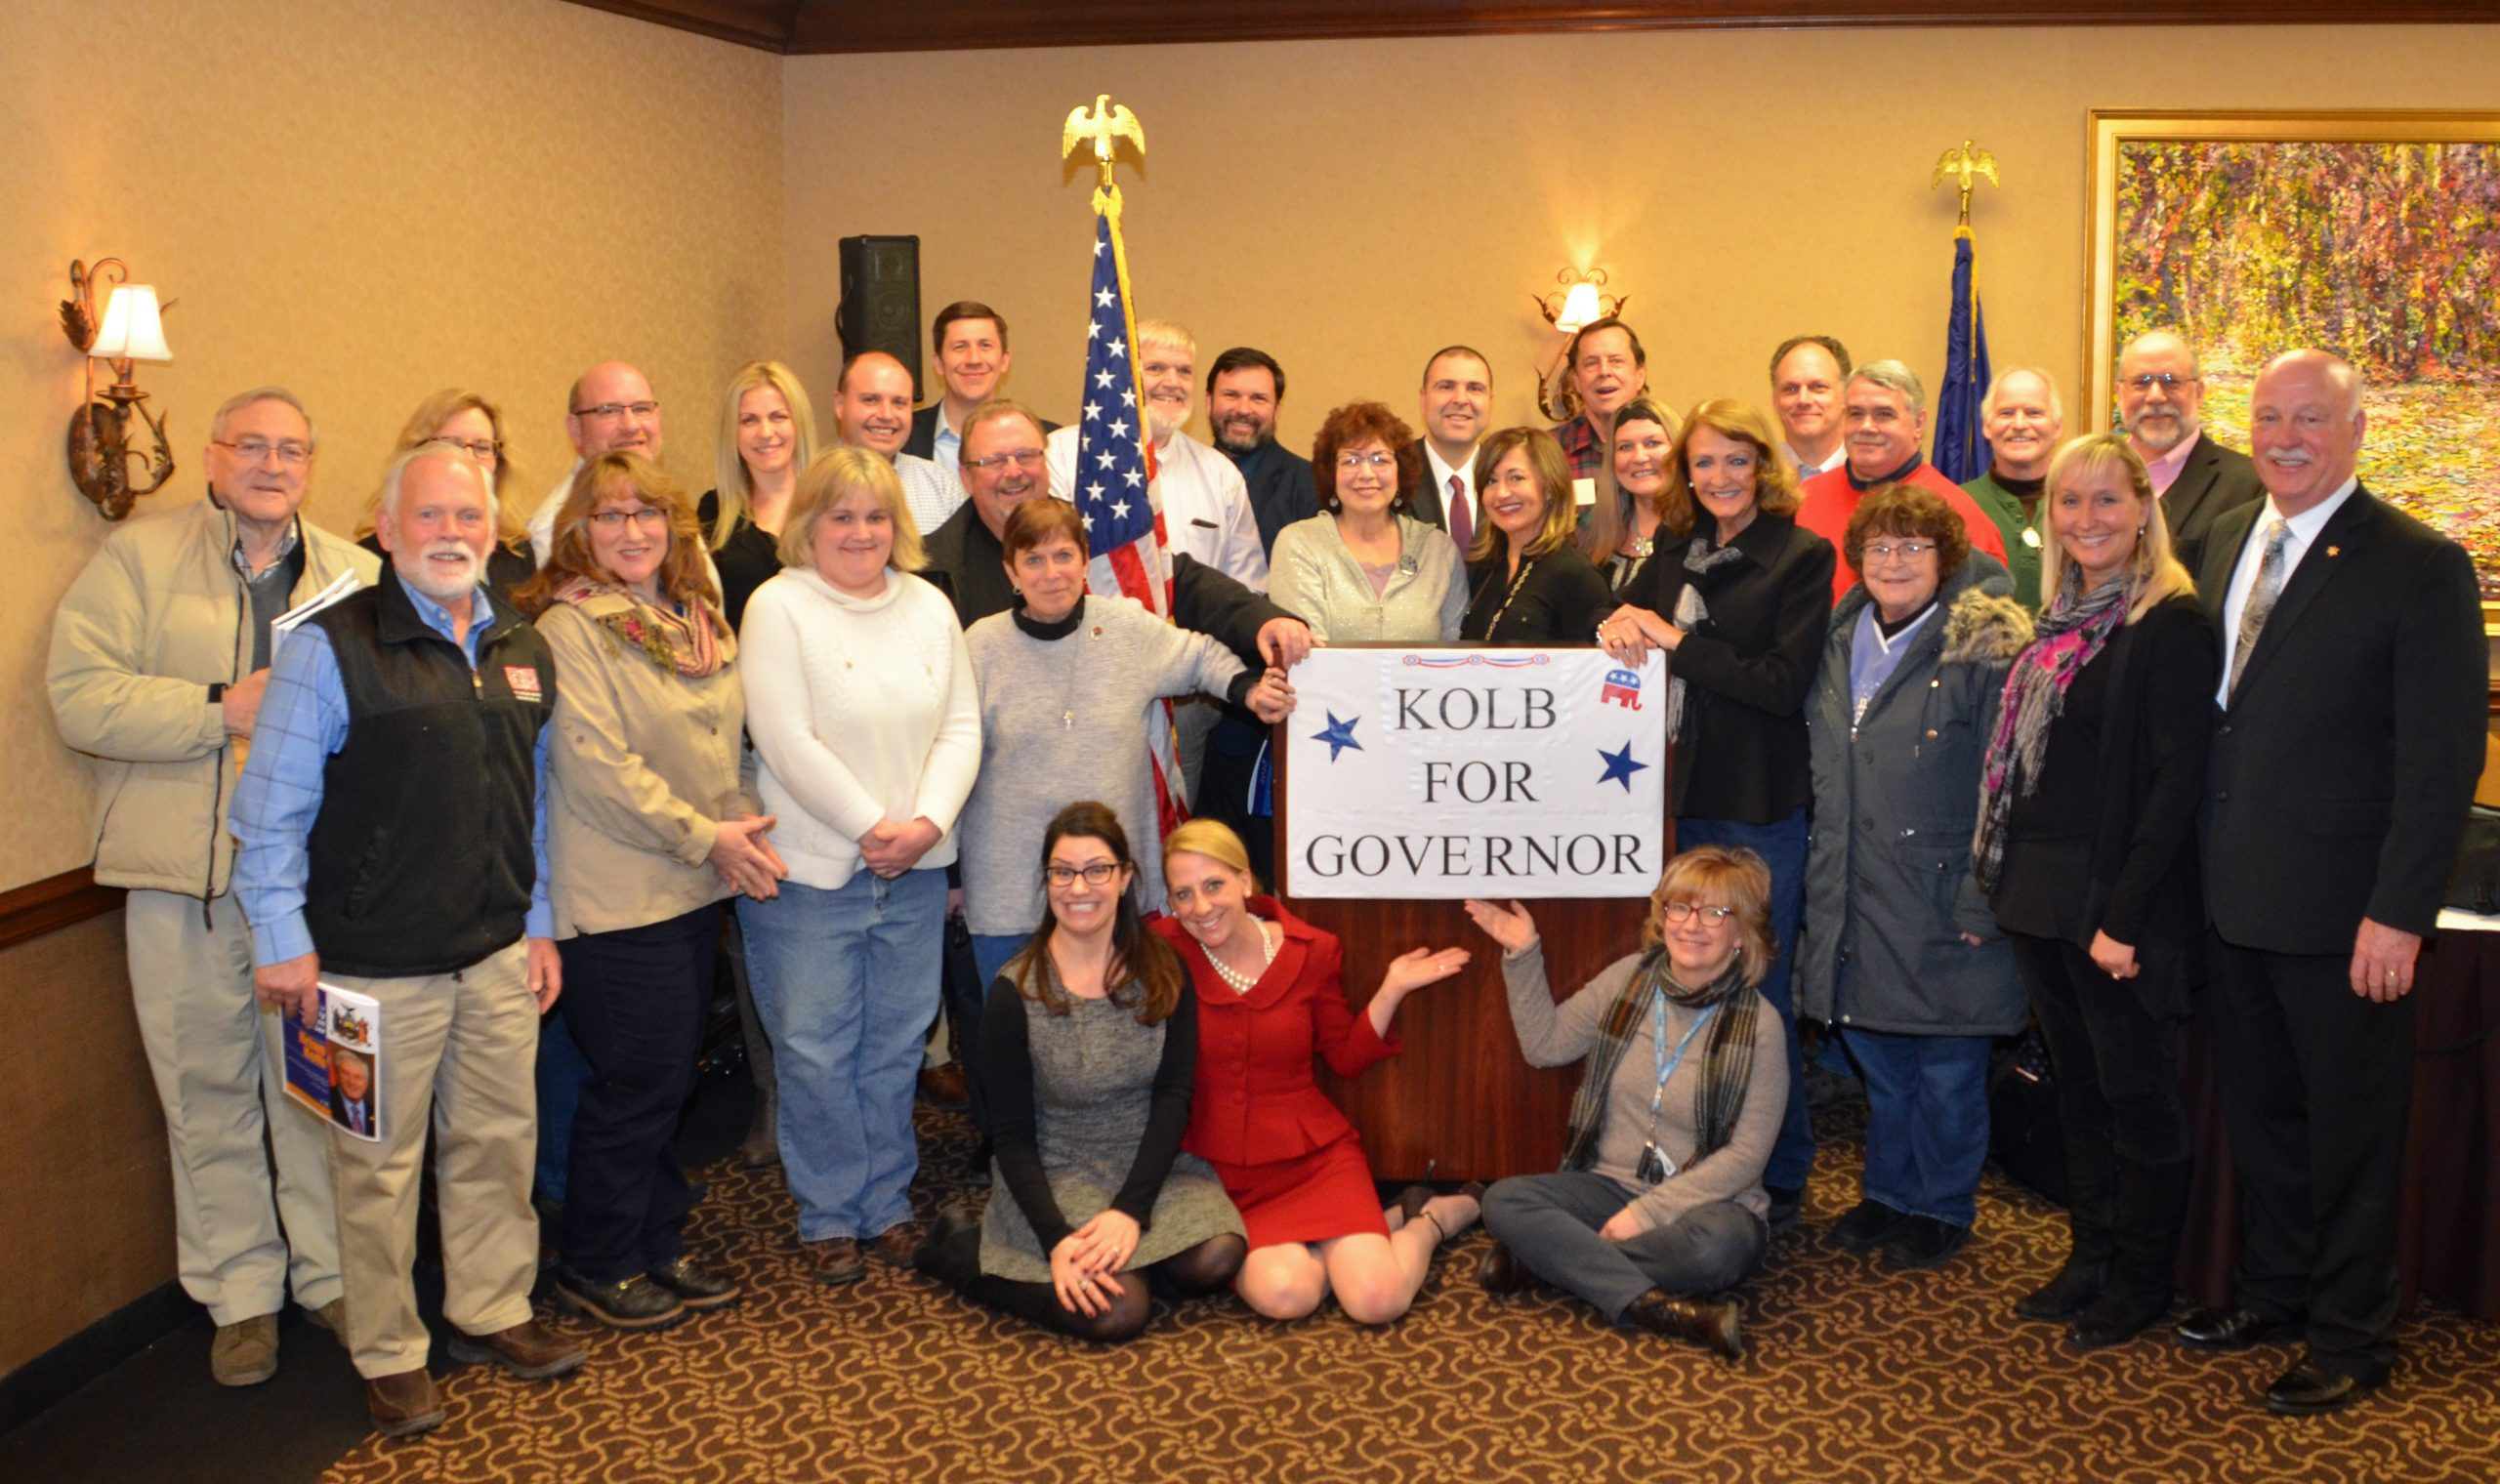 Ontario County GOP Backs Kolb for Governor